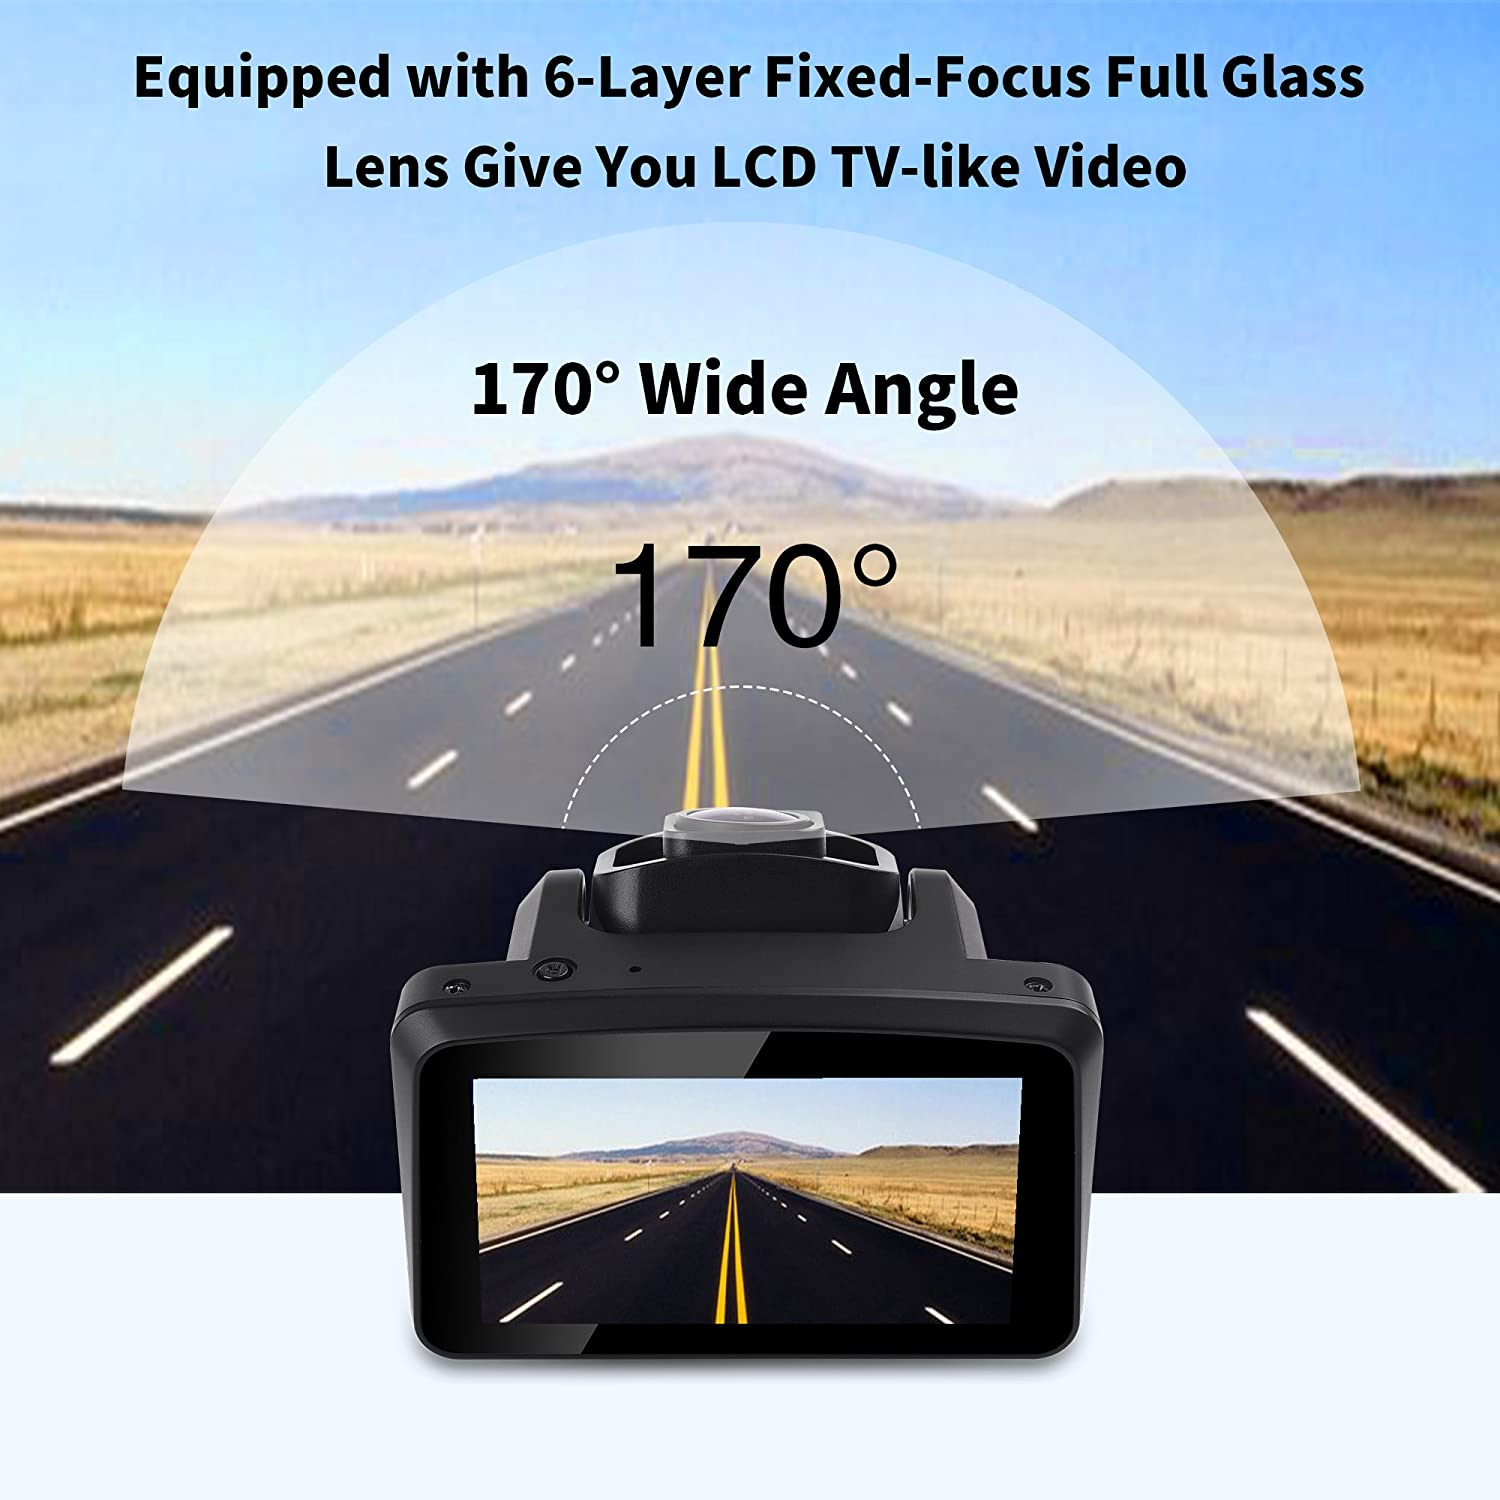 """Driving Video Camera Recorder,Dashboard Vehicle Car DVR OnLyee Dash Cam External Memory Loop Recording OnLyee Technology Co ltd CAM-01 170/° Wide Angle Lens G-Sensor,Parking Mode Full HD 1080P with 3/"""" LCD Display Auto ON//Off"""